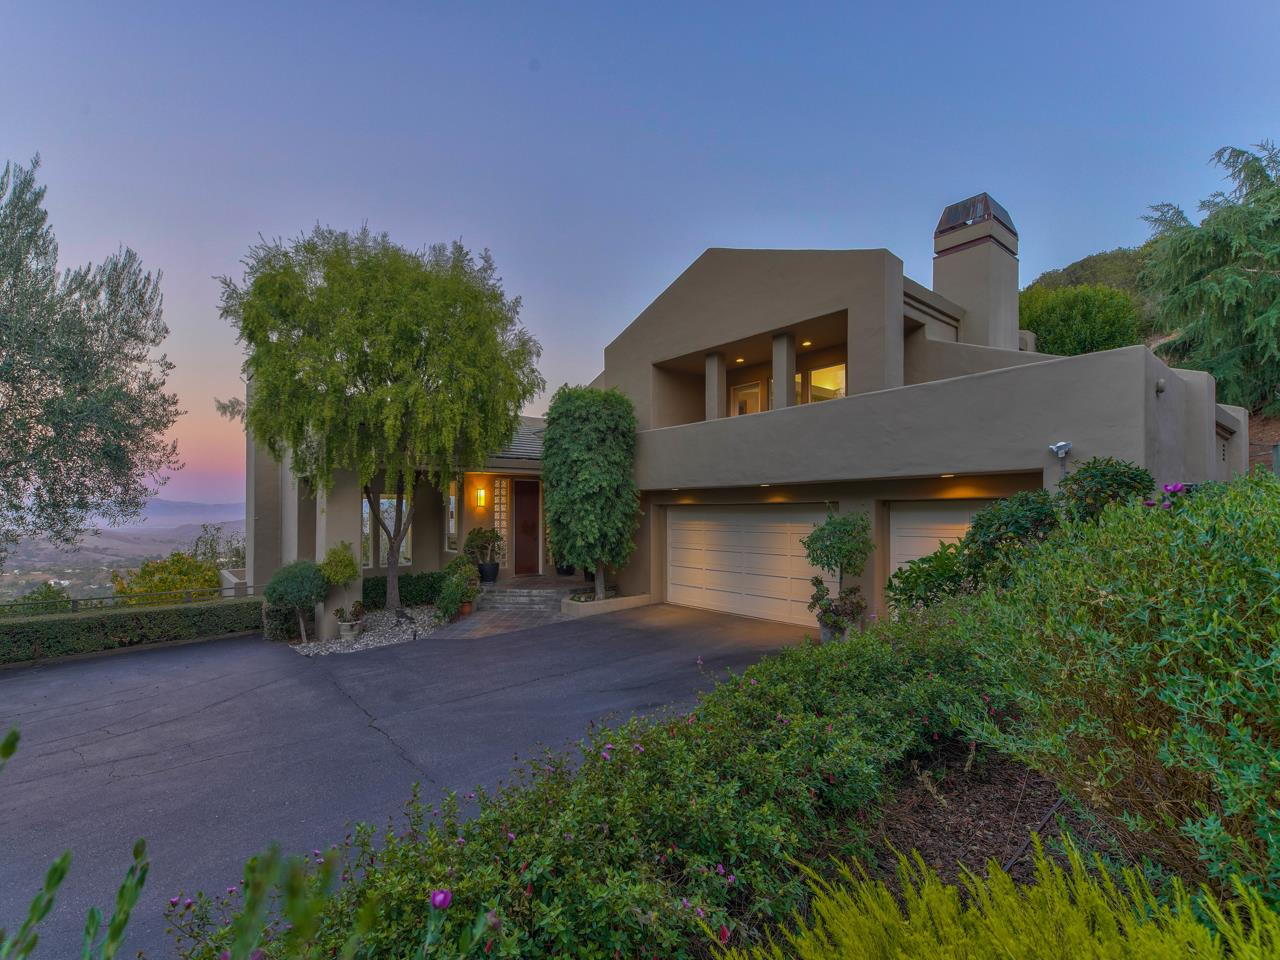 Photo of 11623 Spur Rd, MONTEREY, CA 93940